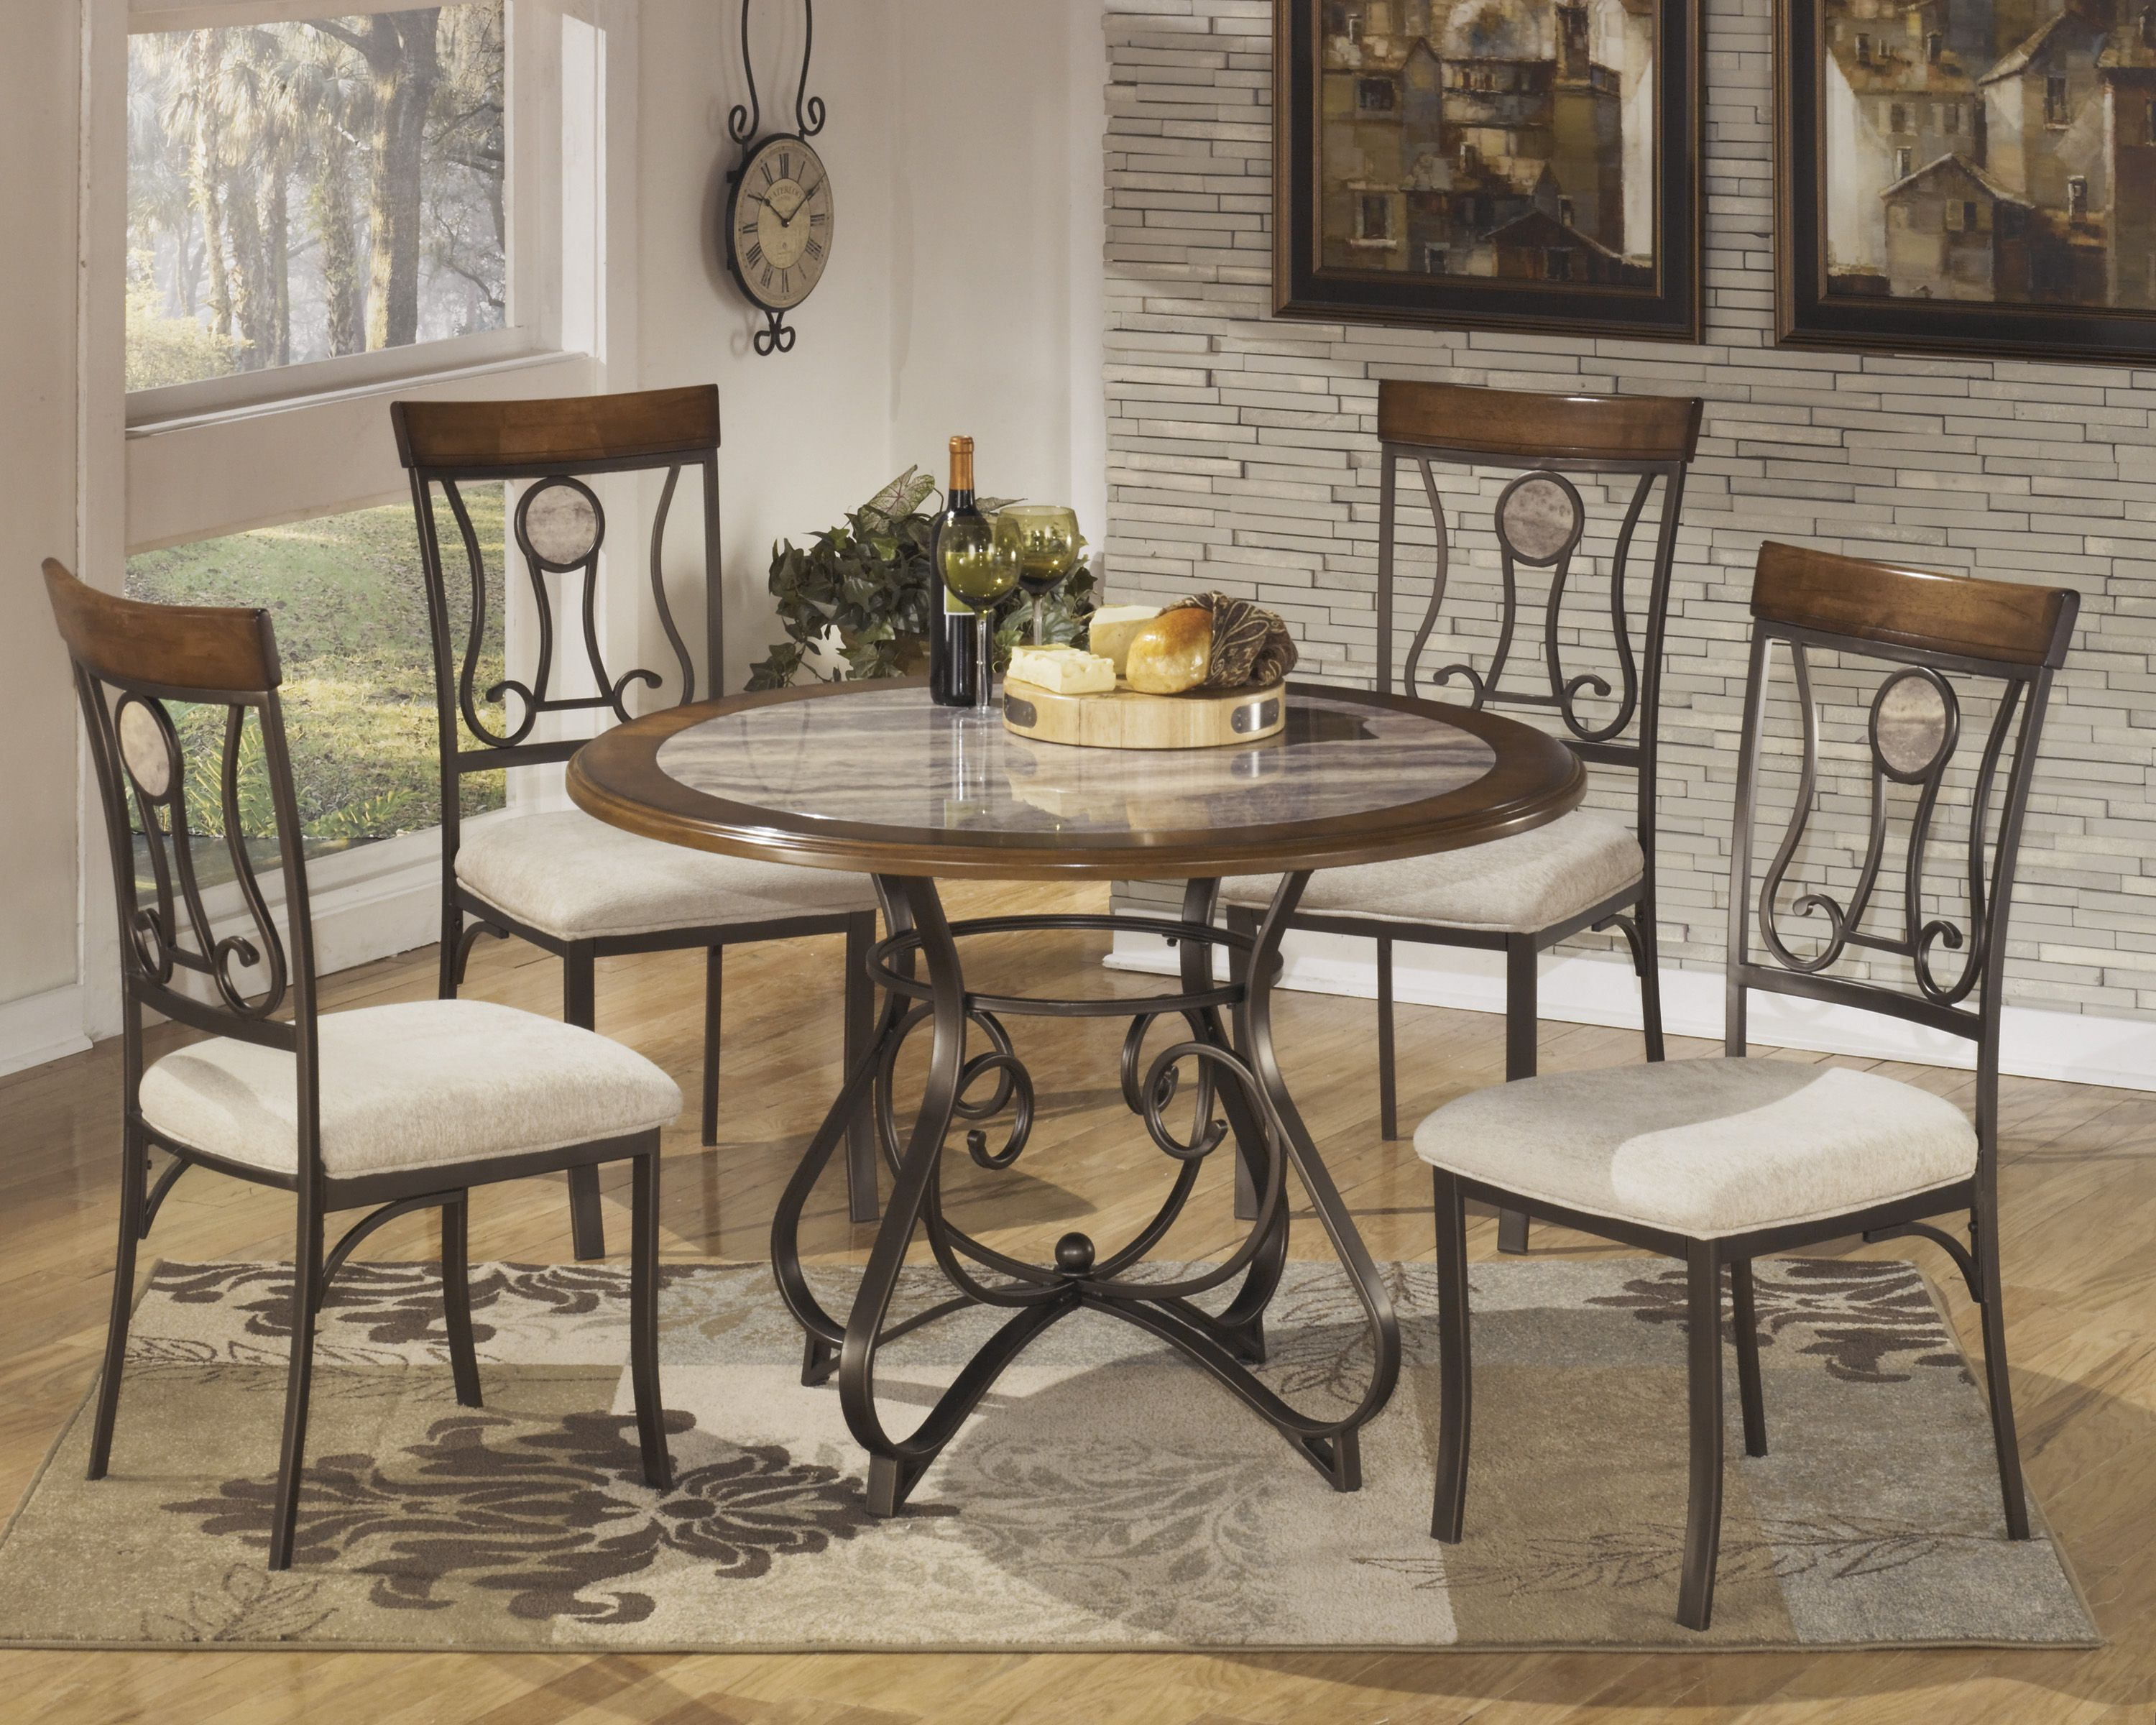 Signature Design By Ashley Hopstand Round Dining Table   Overstock™  Shopping   Great Deals On Signature Design By Ashley Dining Tables